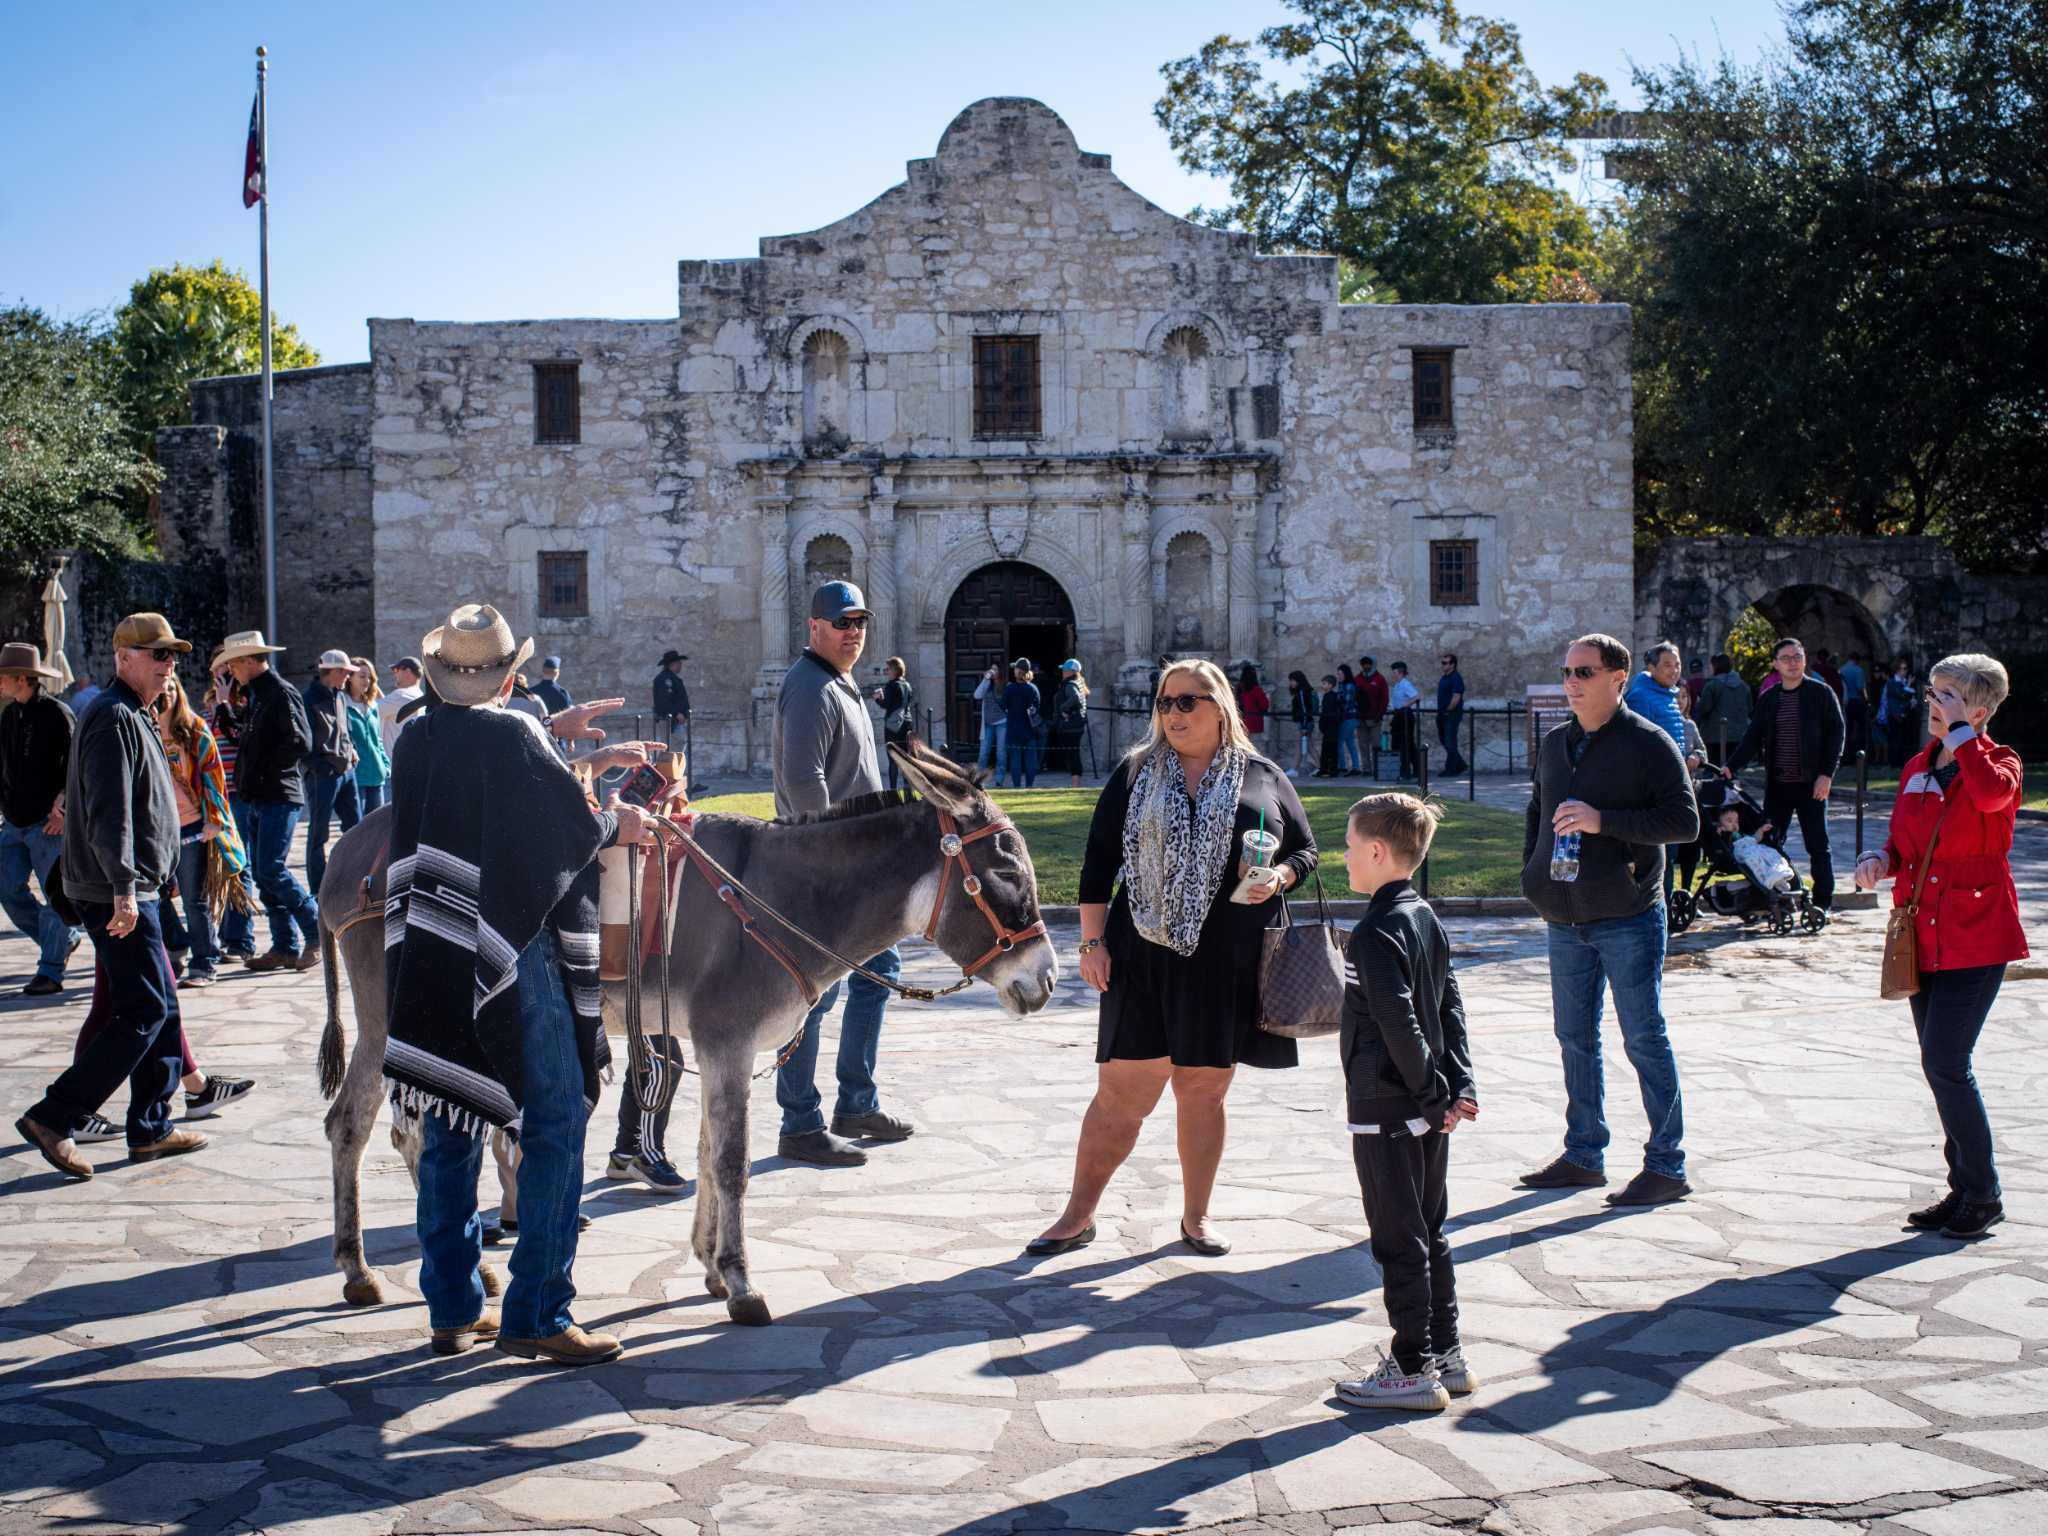 Tuesday S Weather In San Antonio Bright And Sunny On